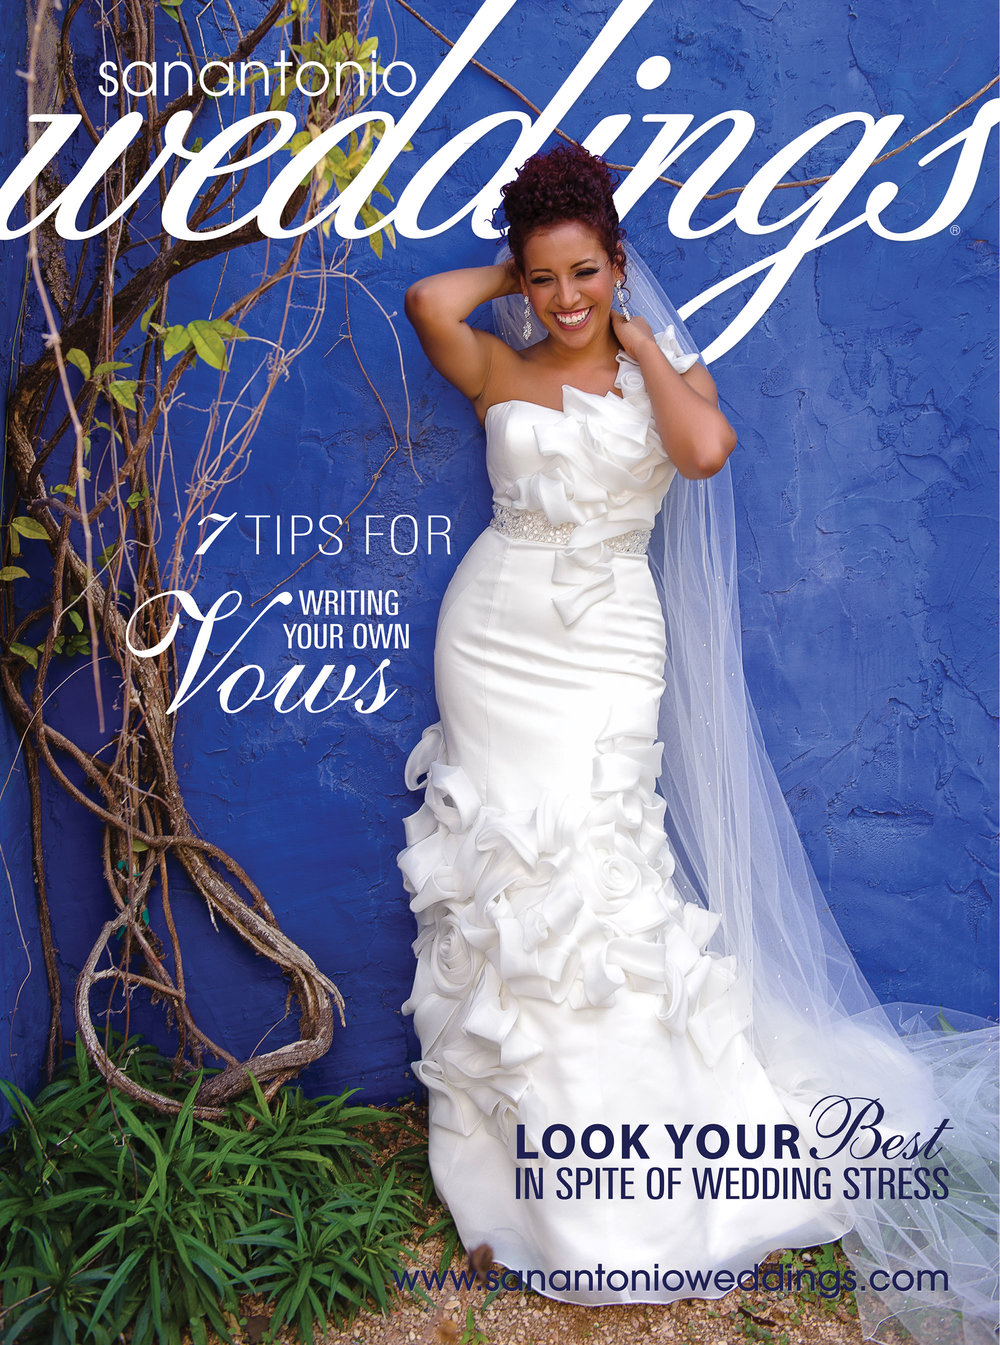 San Antonio Weddings Magazine Cover  (2013, Vilma Rodriguez-Dyer)